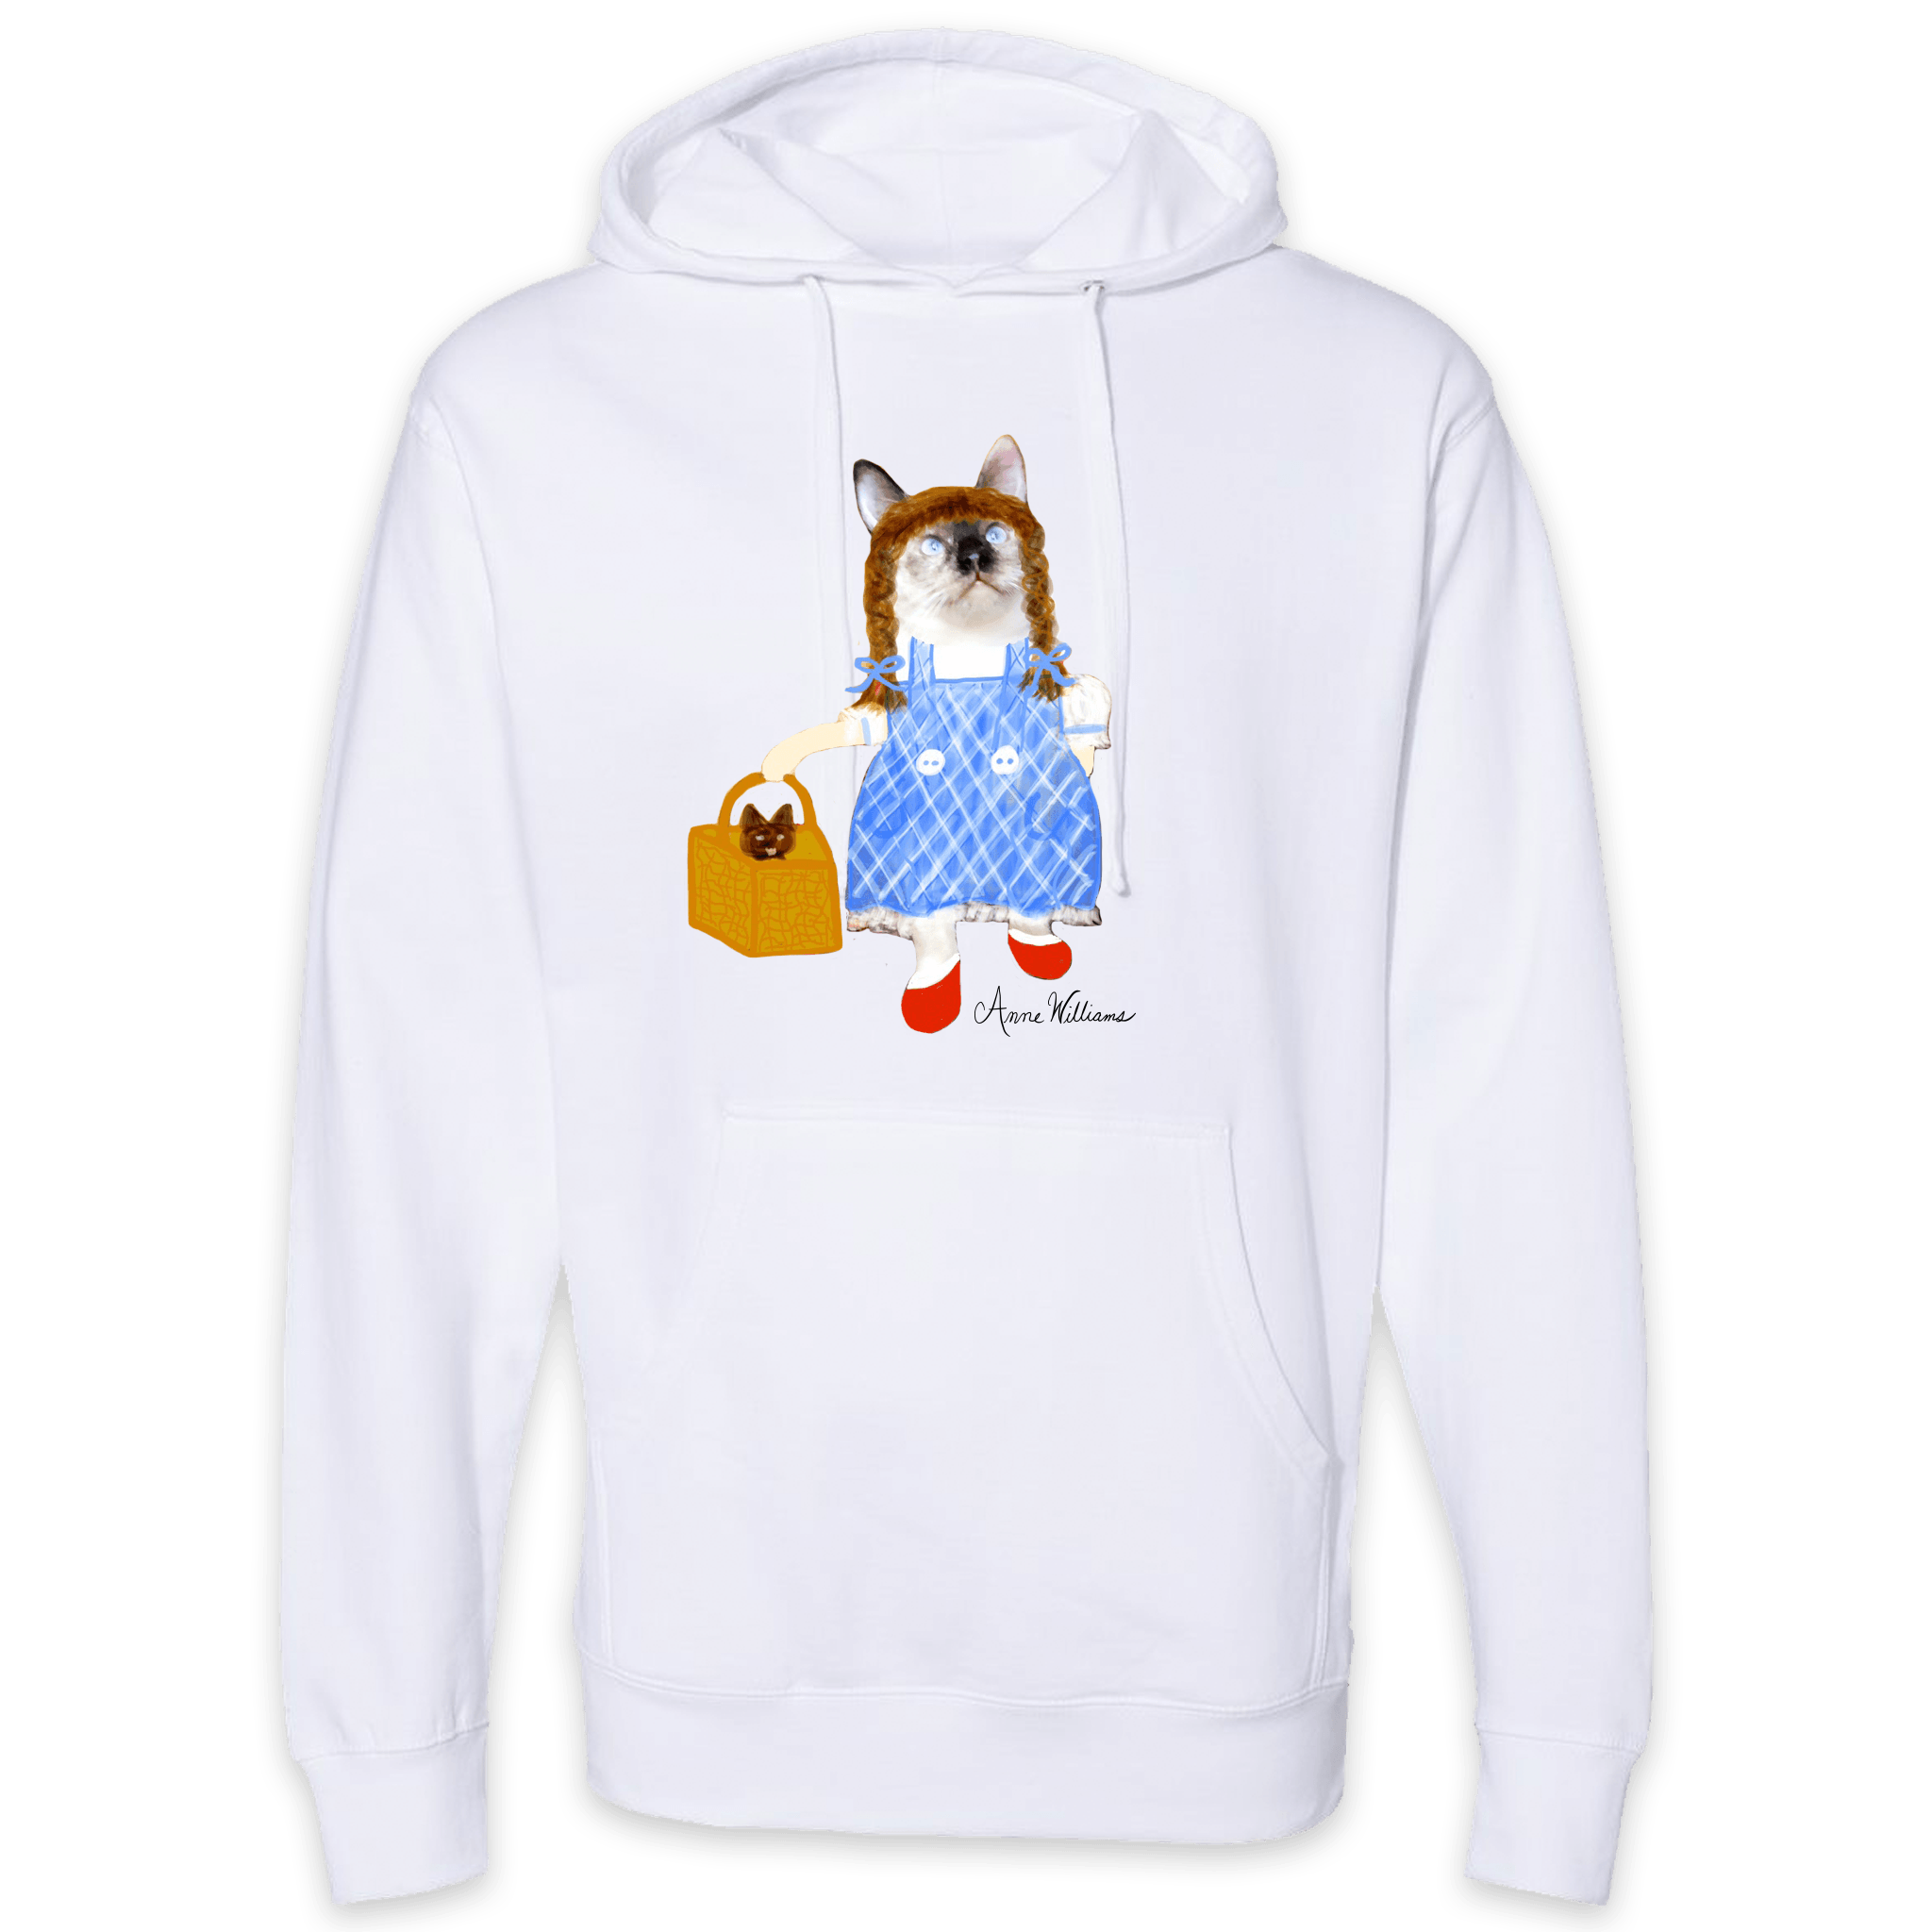 Anne Williams Art Red Ball Cat Pullover Hooded Sweatshirt